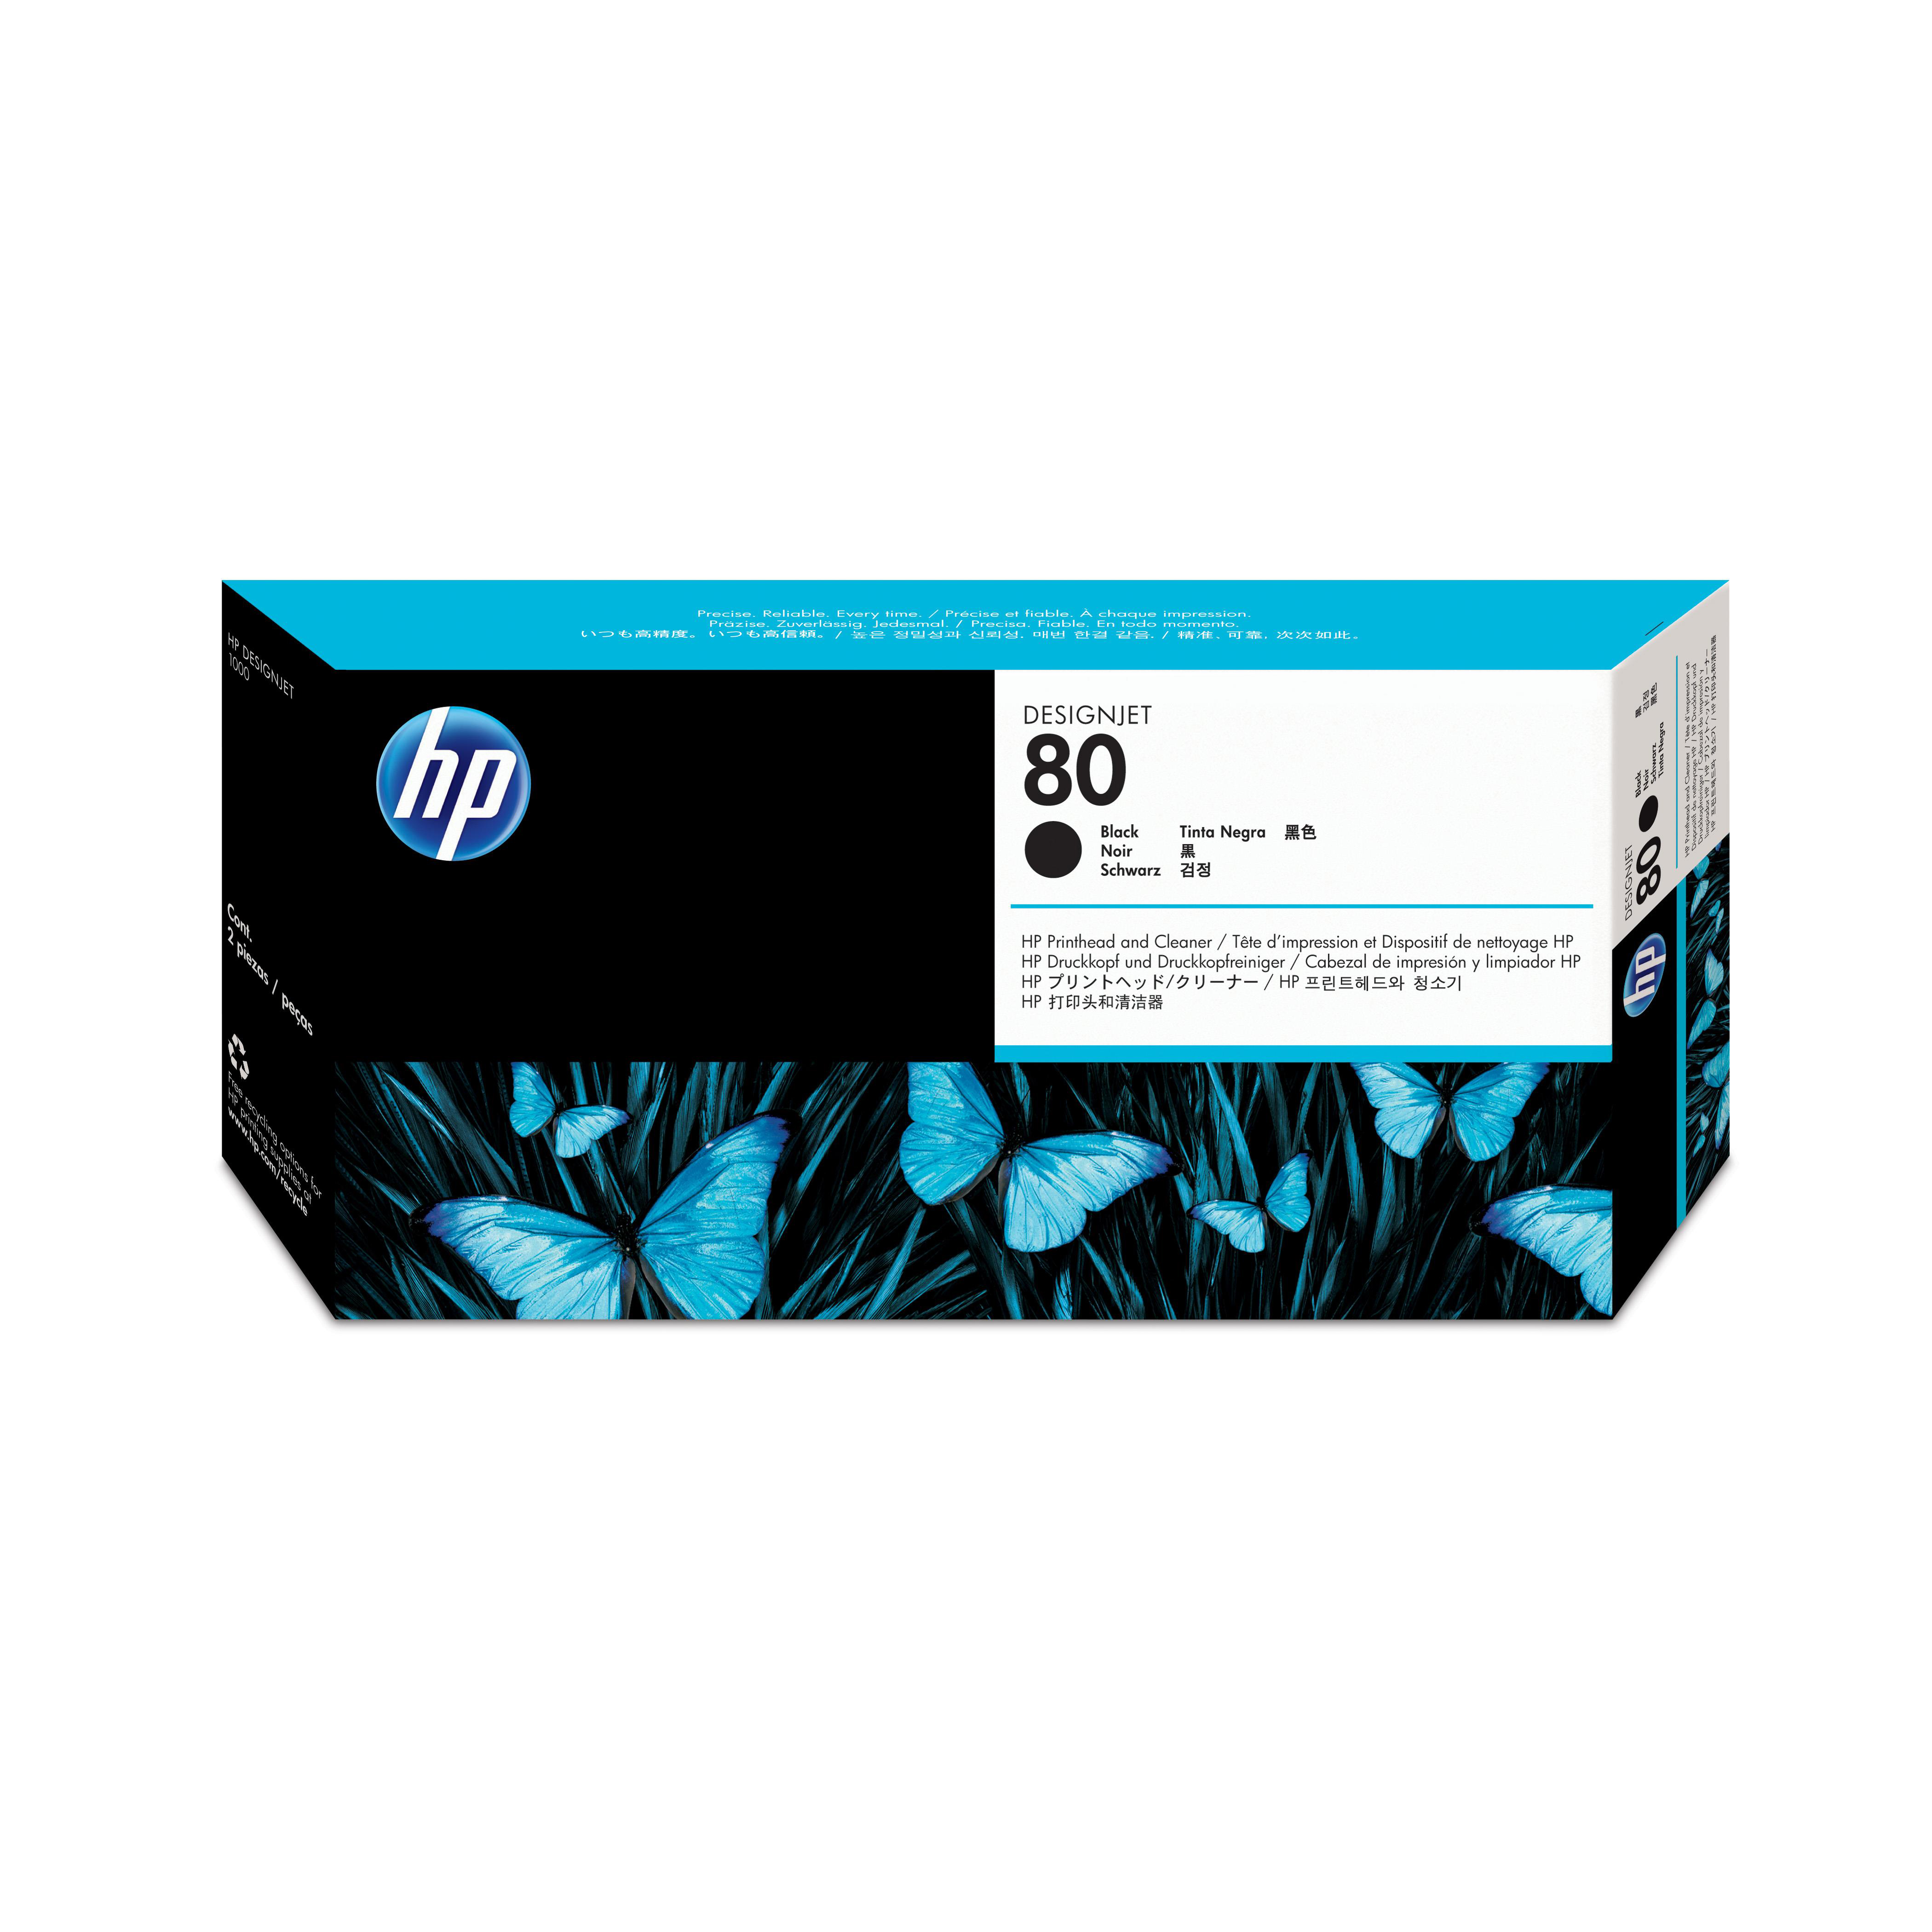 Hewlett Packard Hp No 80 Inkjet Printhead And Cleaner 17ml Black Ref C4820a